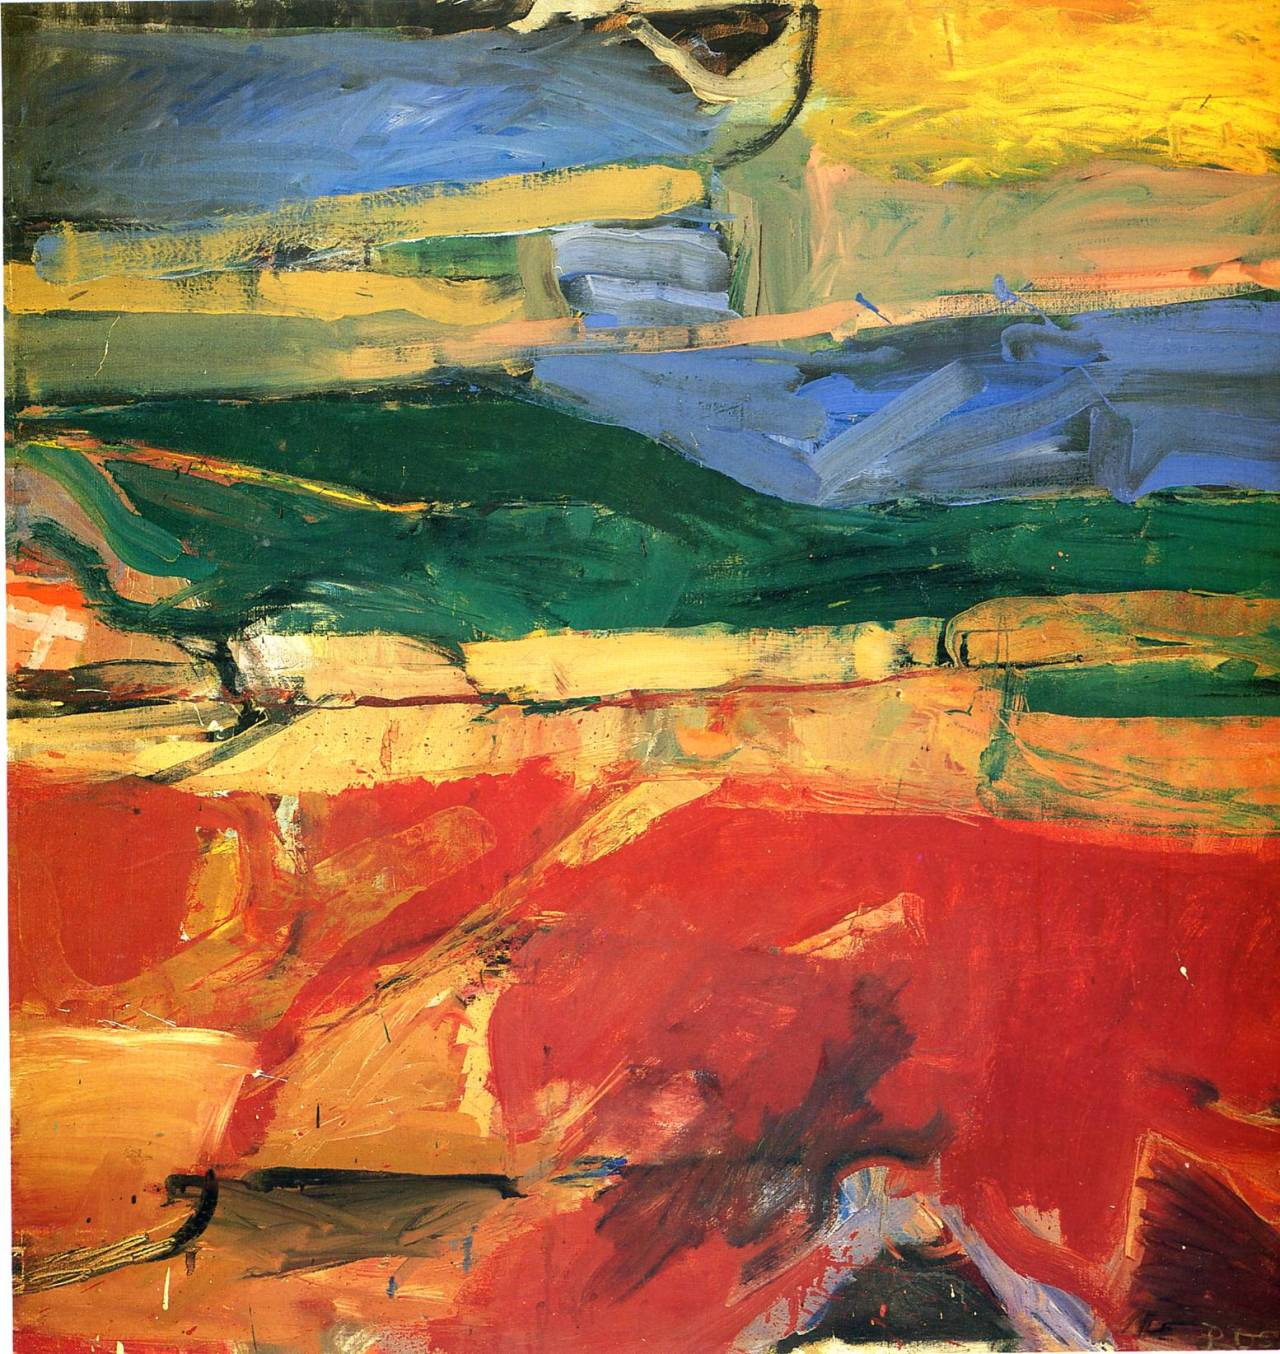 peira:  drawpaintprint: Richard Diebenkorn:  Berkeley, no. 32 (1955)